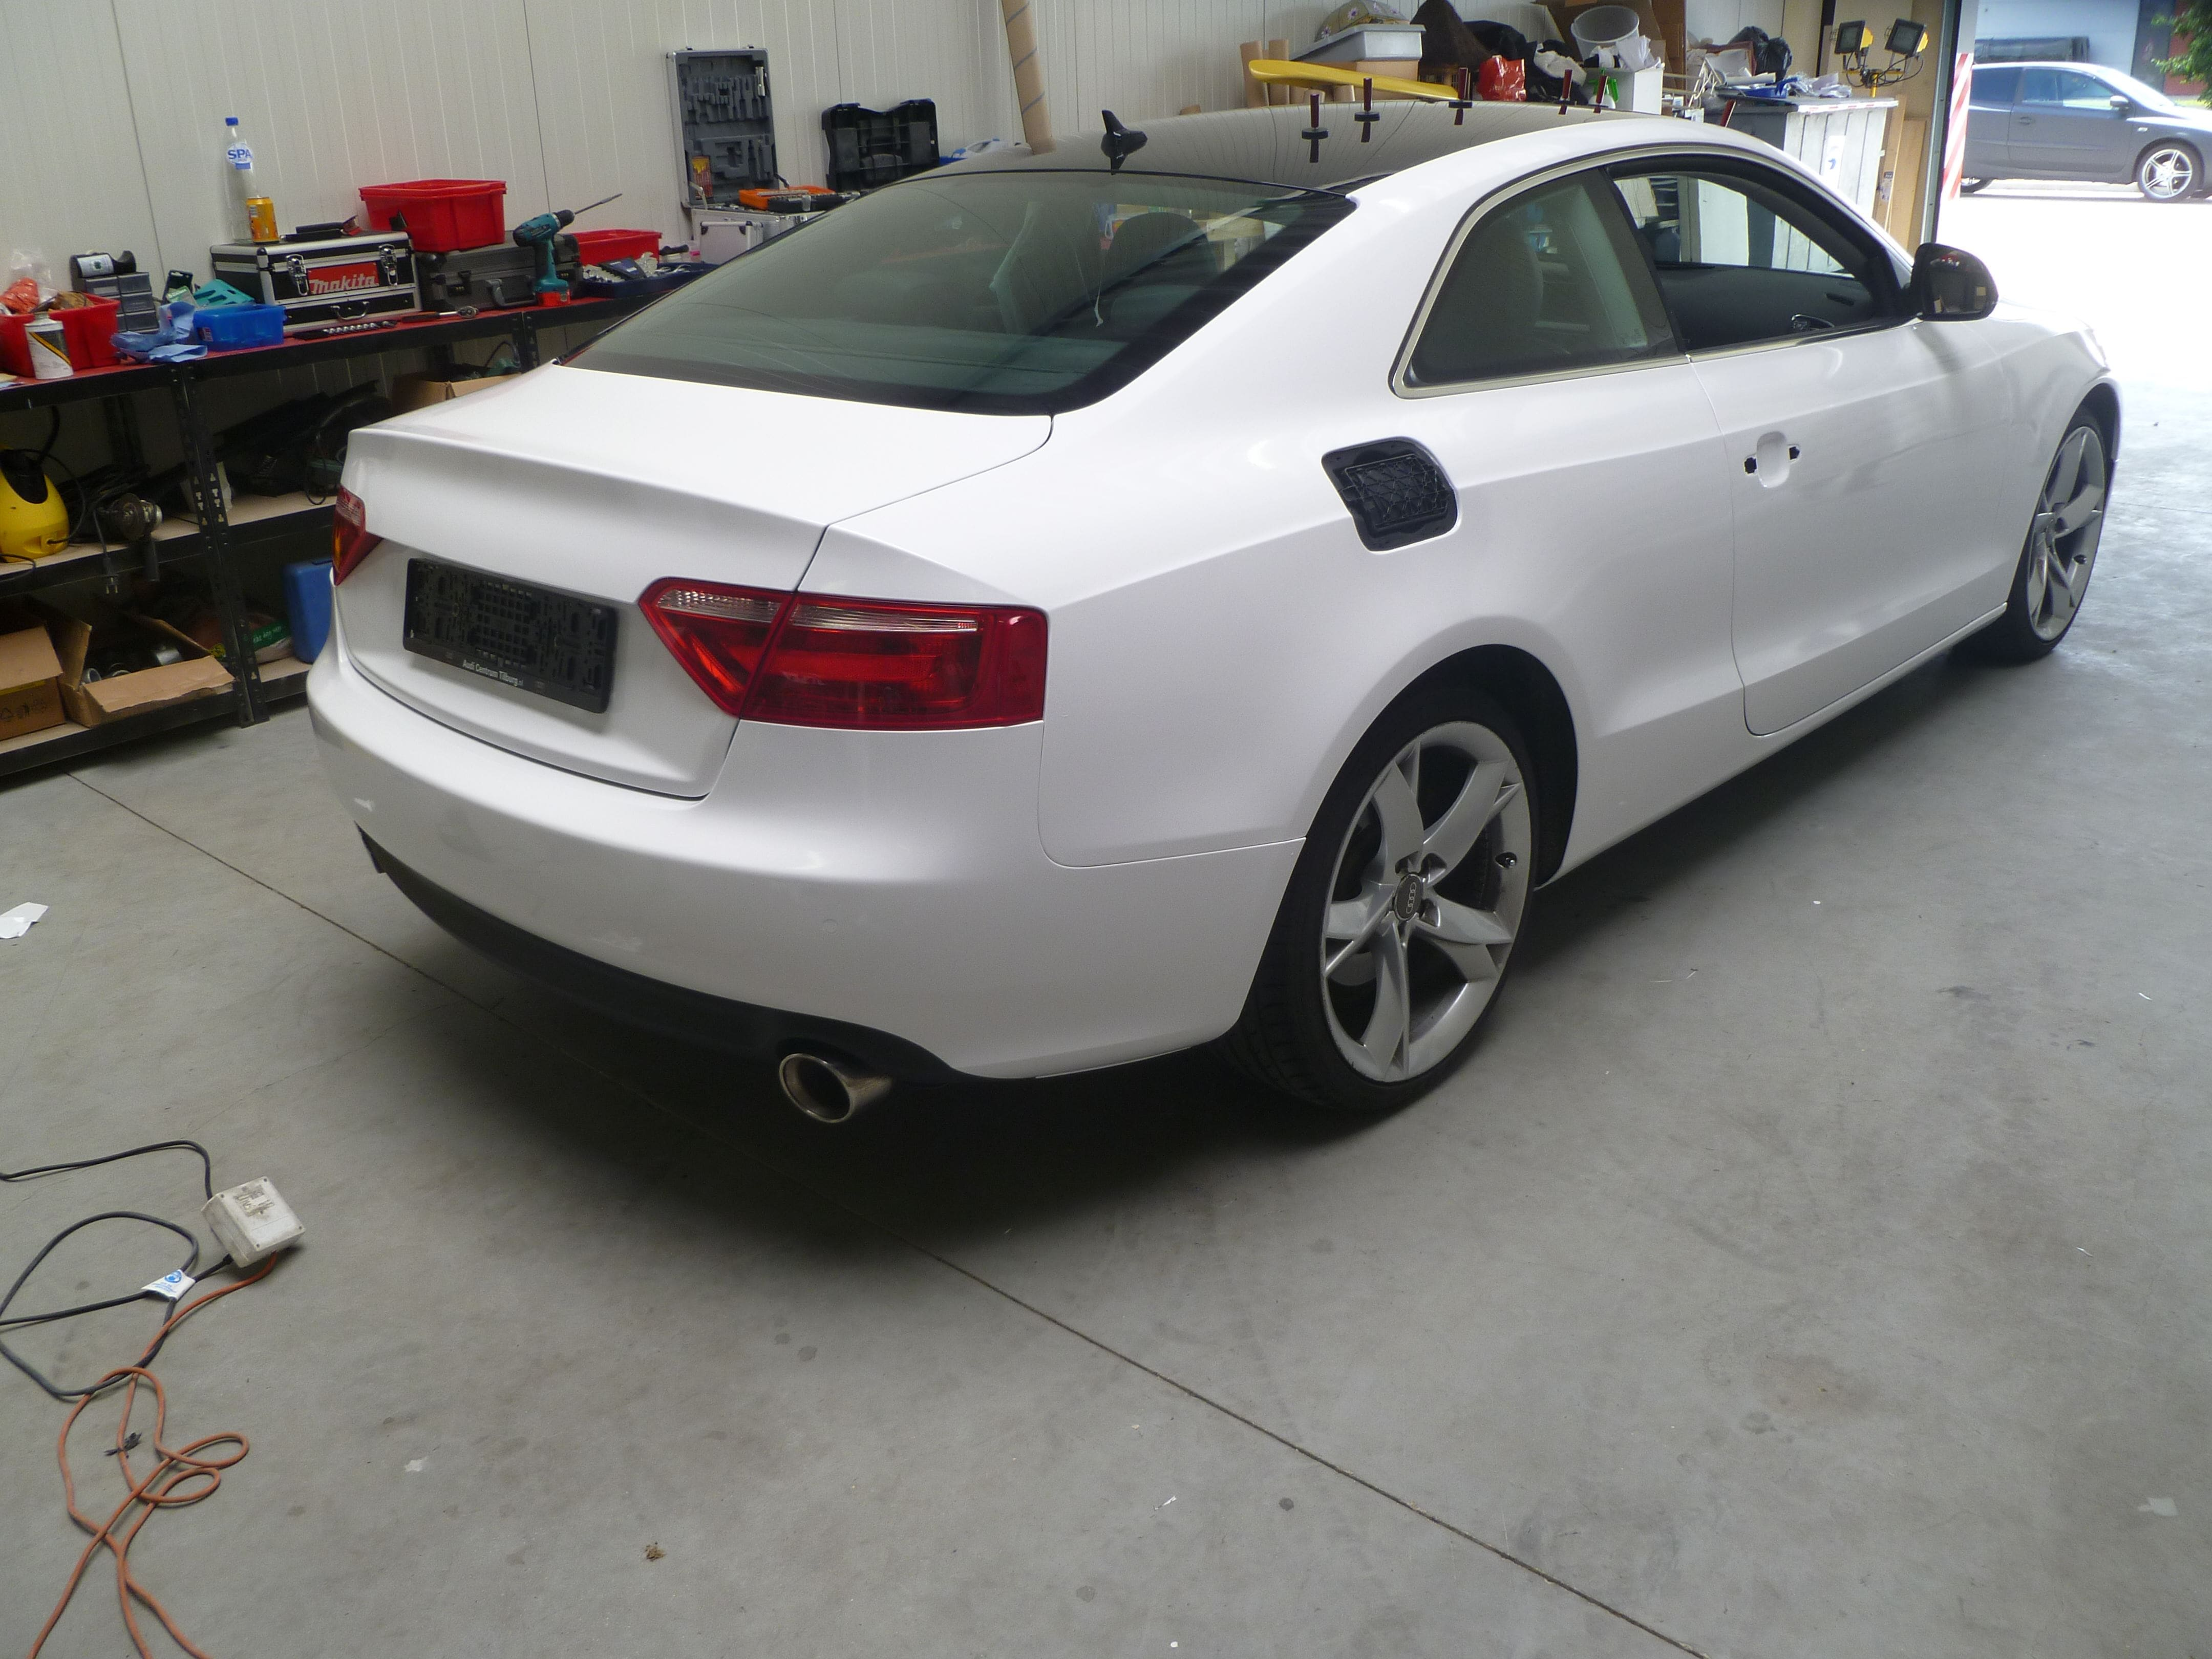 Audi A5 coupe met Metallic Witte Wrap, Carwrapping door Wrapmyride.nu Foto-nr:4727, ©2020